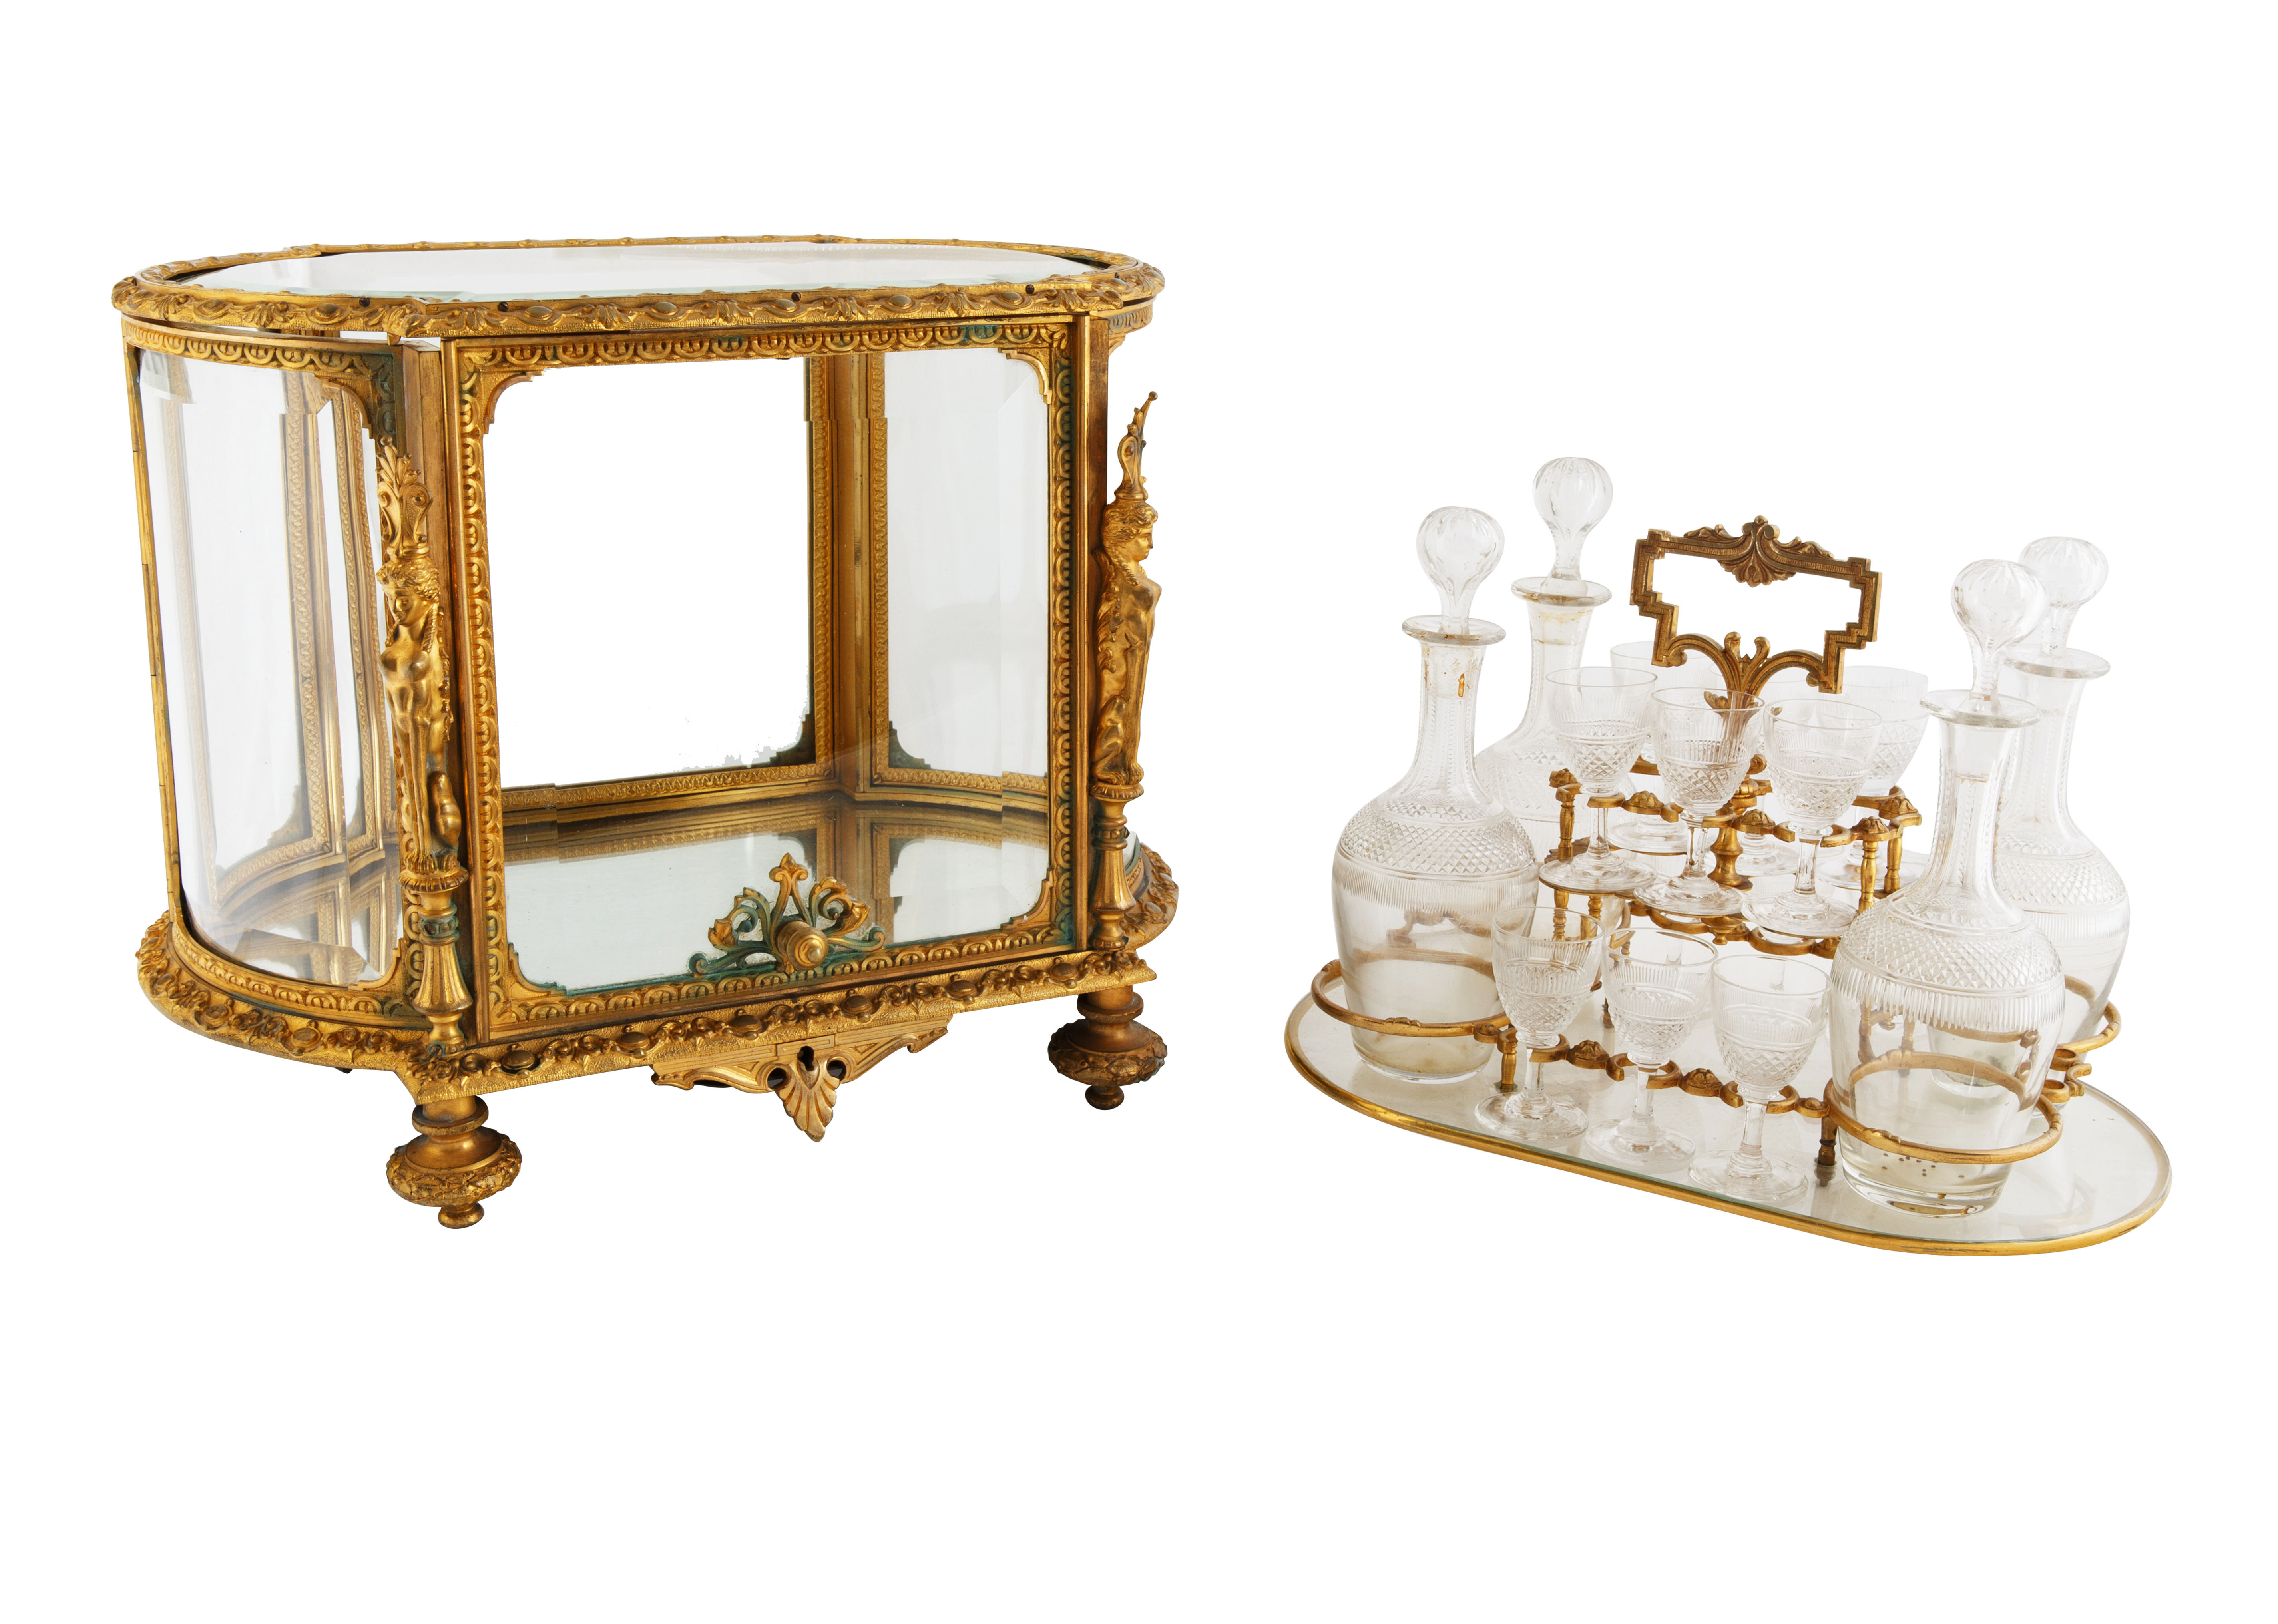 LATE 19TH-EARLY 20TH CENTURY FRENCH LOUIS XVI STYLE GILT BRONZE CAVE A LIQUEUR - Image 6 of 7